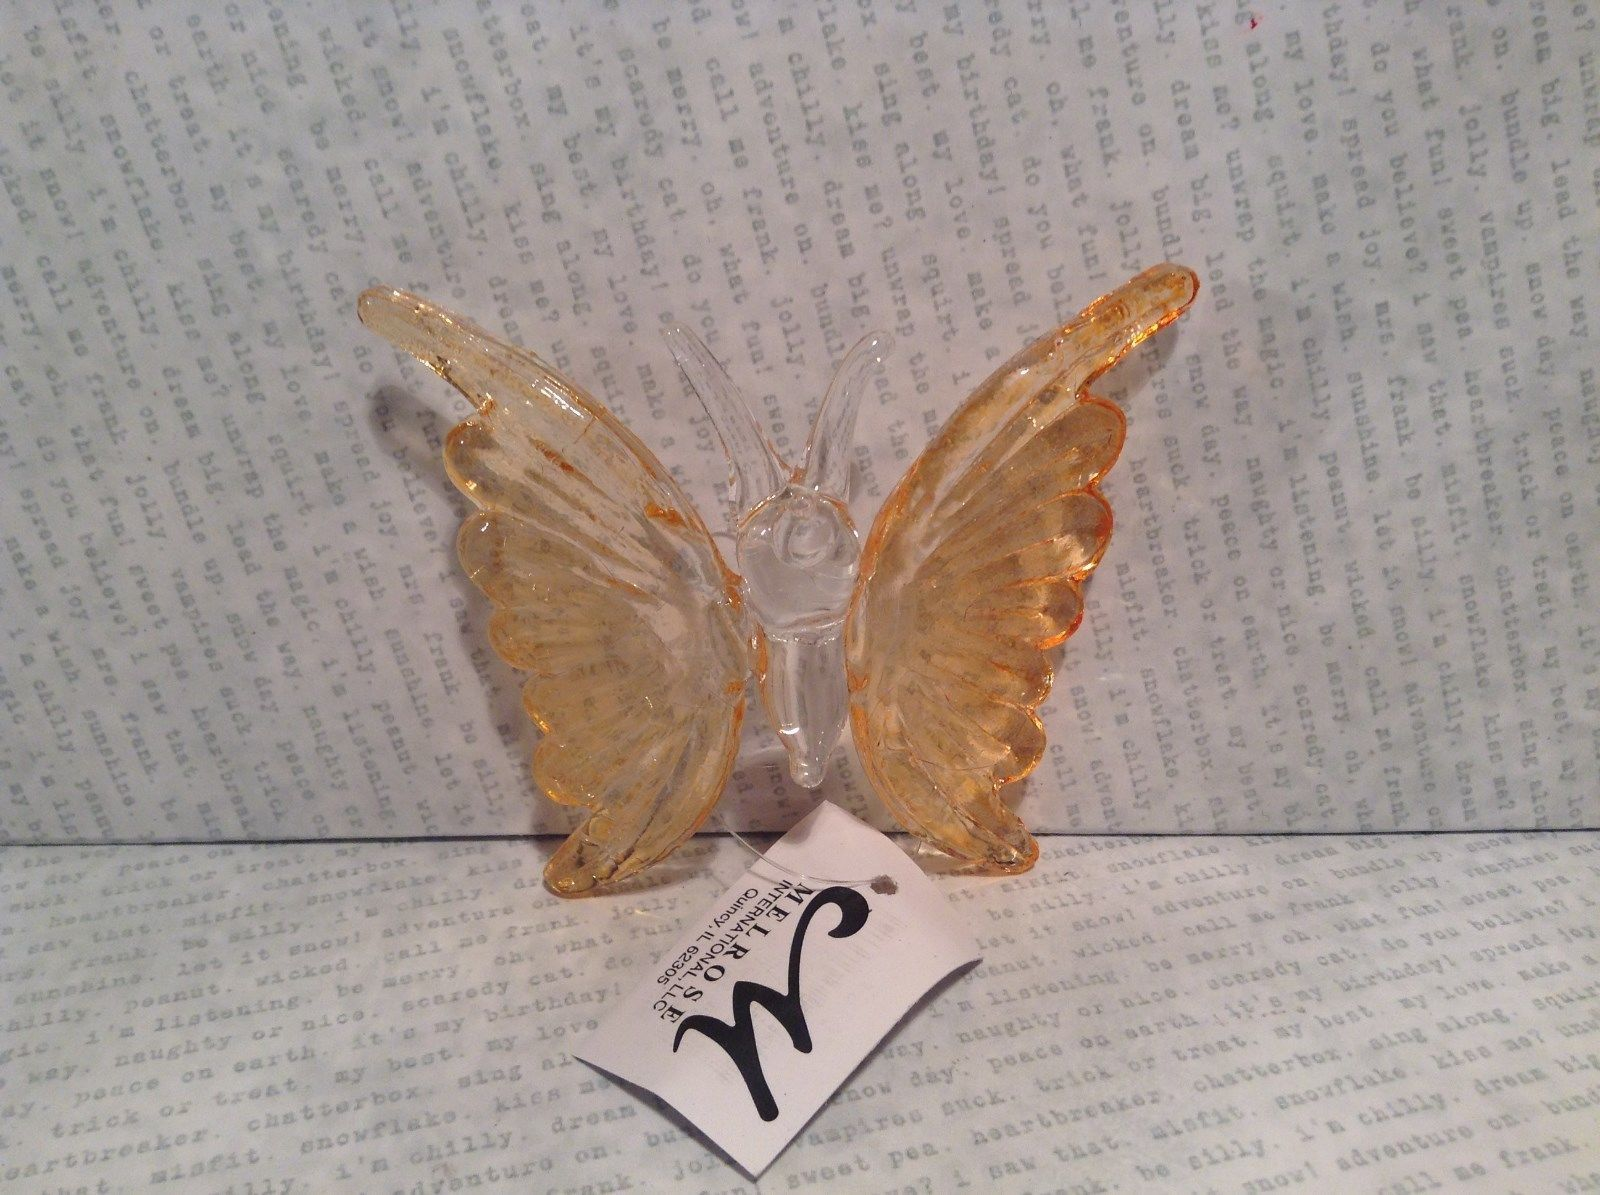 Orange Butterfly Ornament 3 Inches Long 100 percent glass